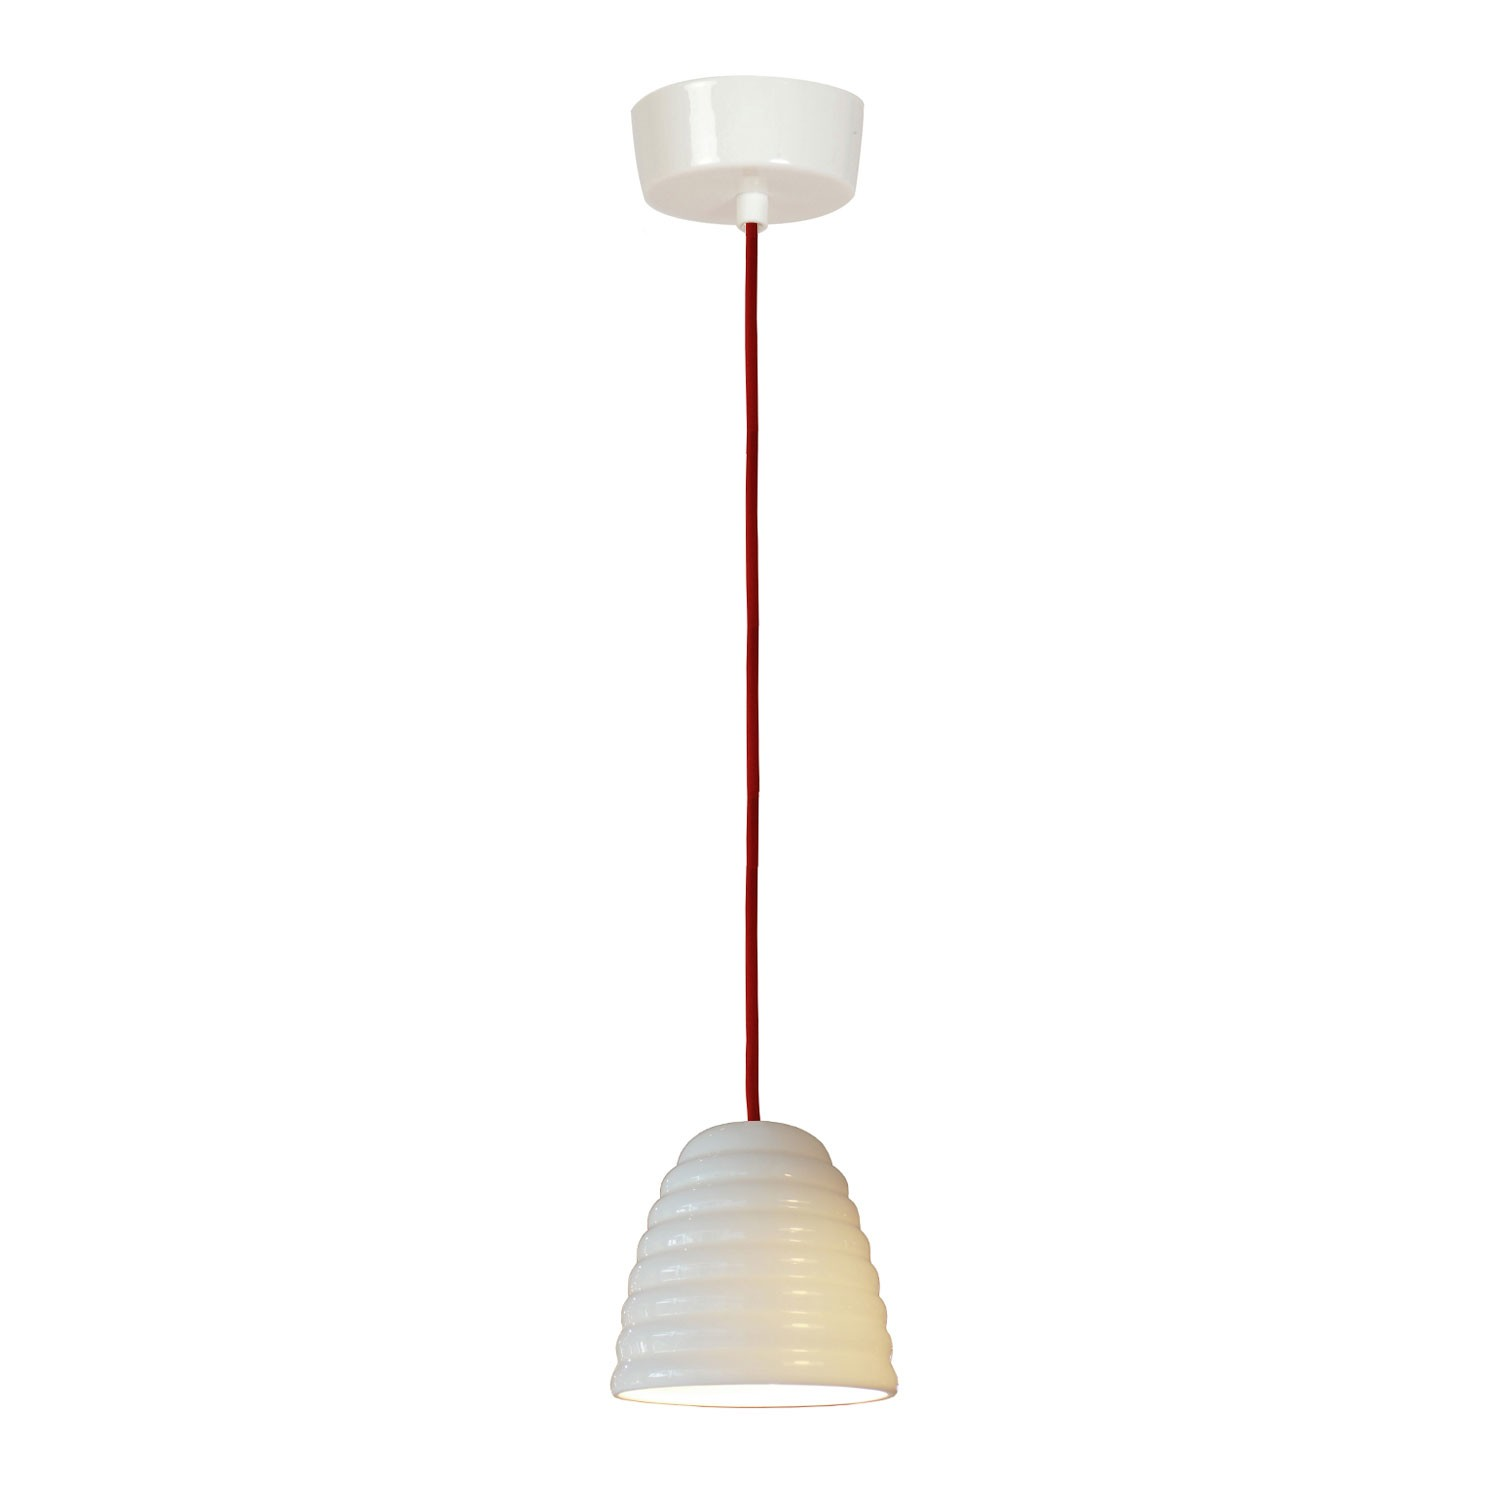 Hector Bibendum Pendant Light Natural White, Red Cable, Small